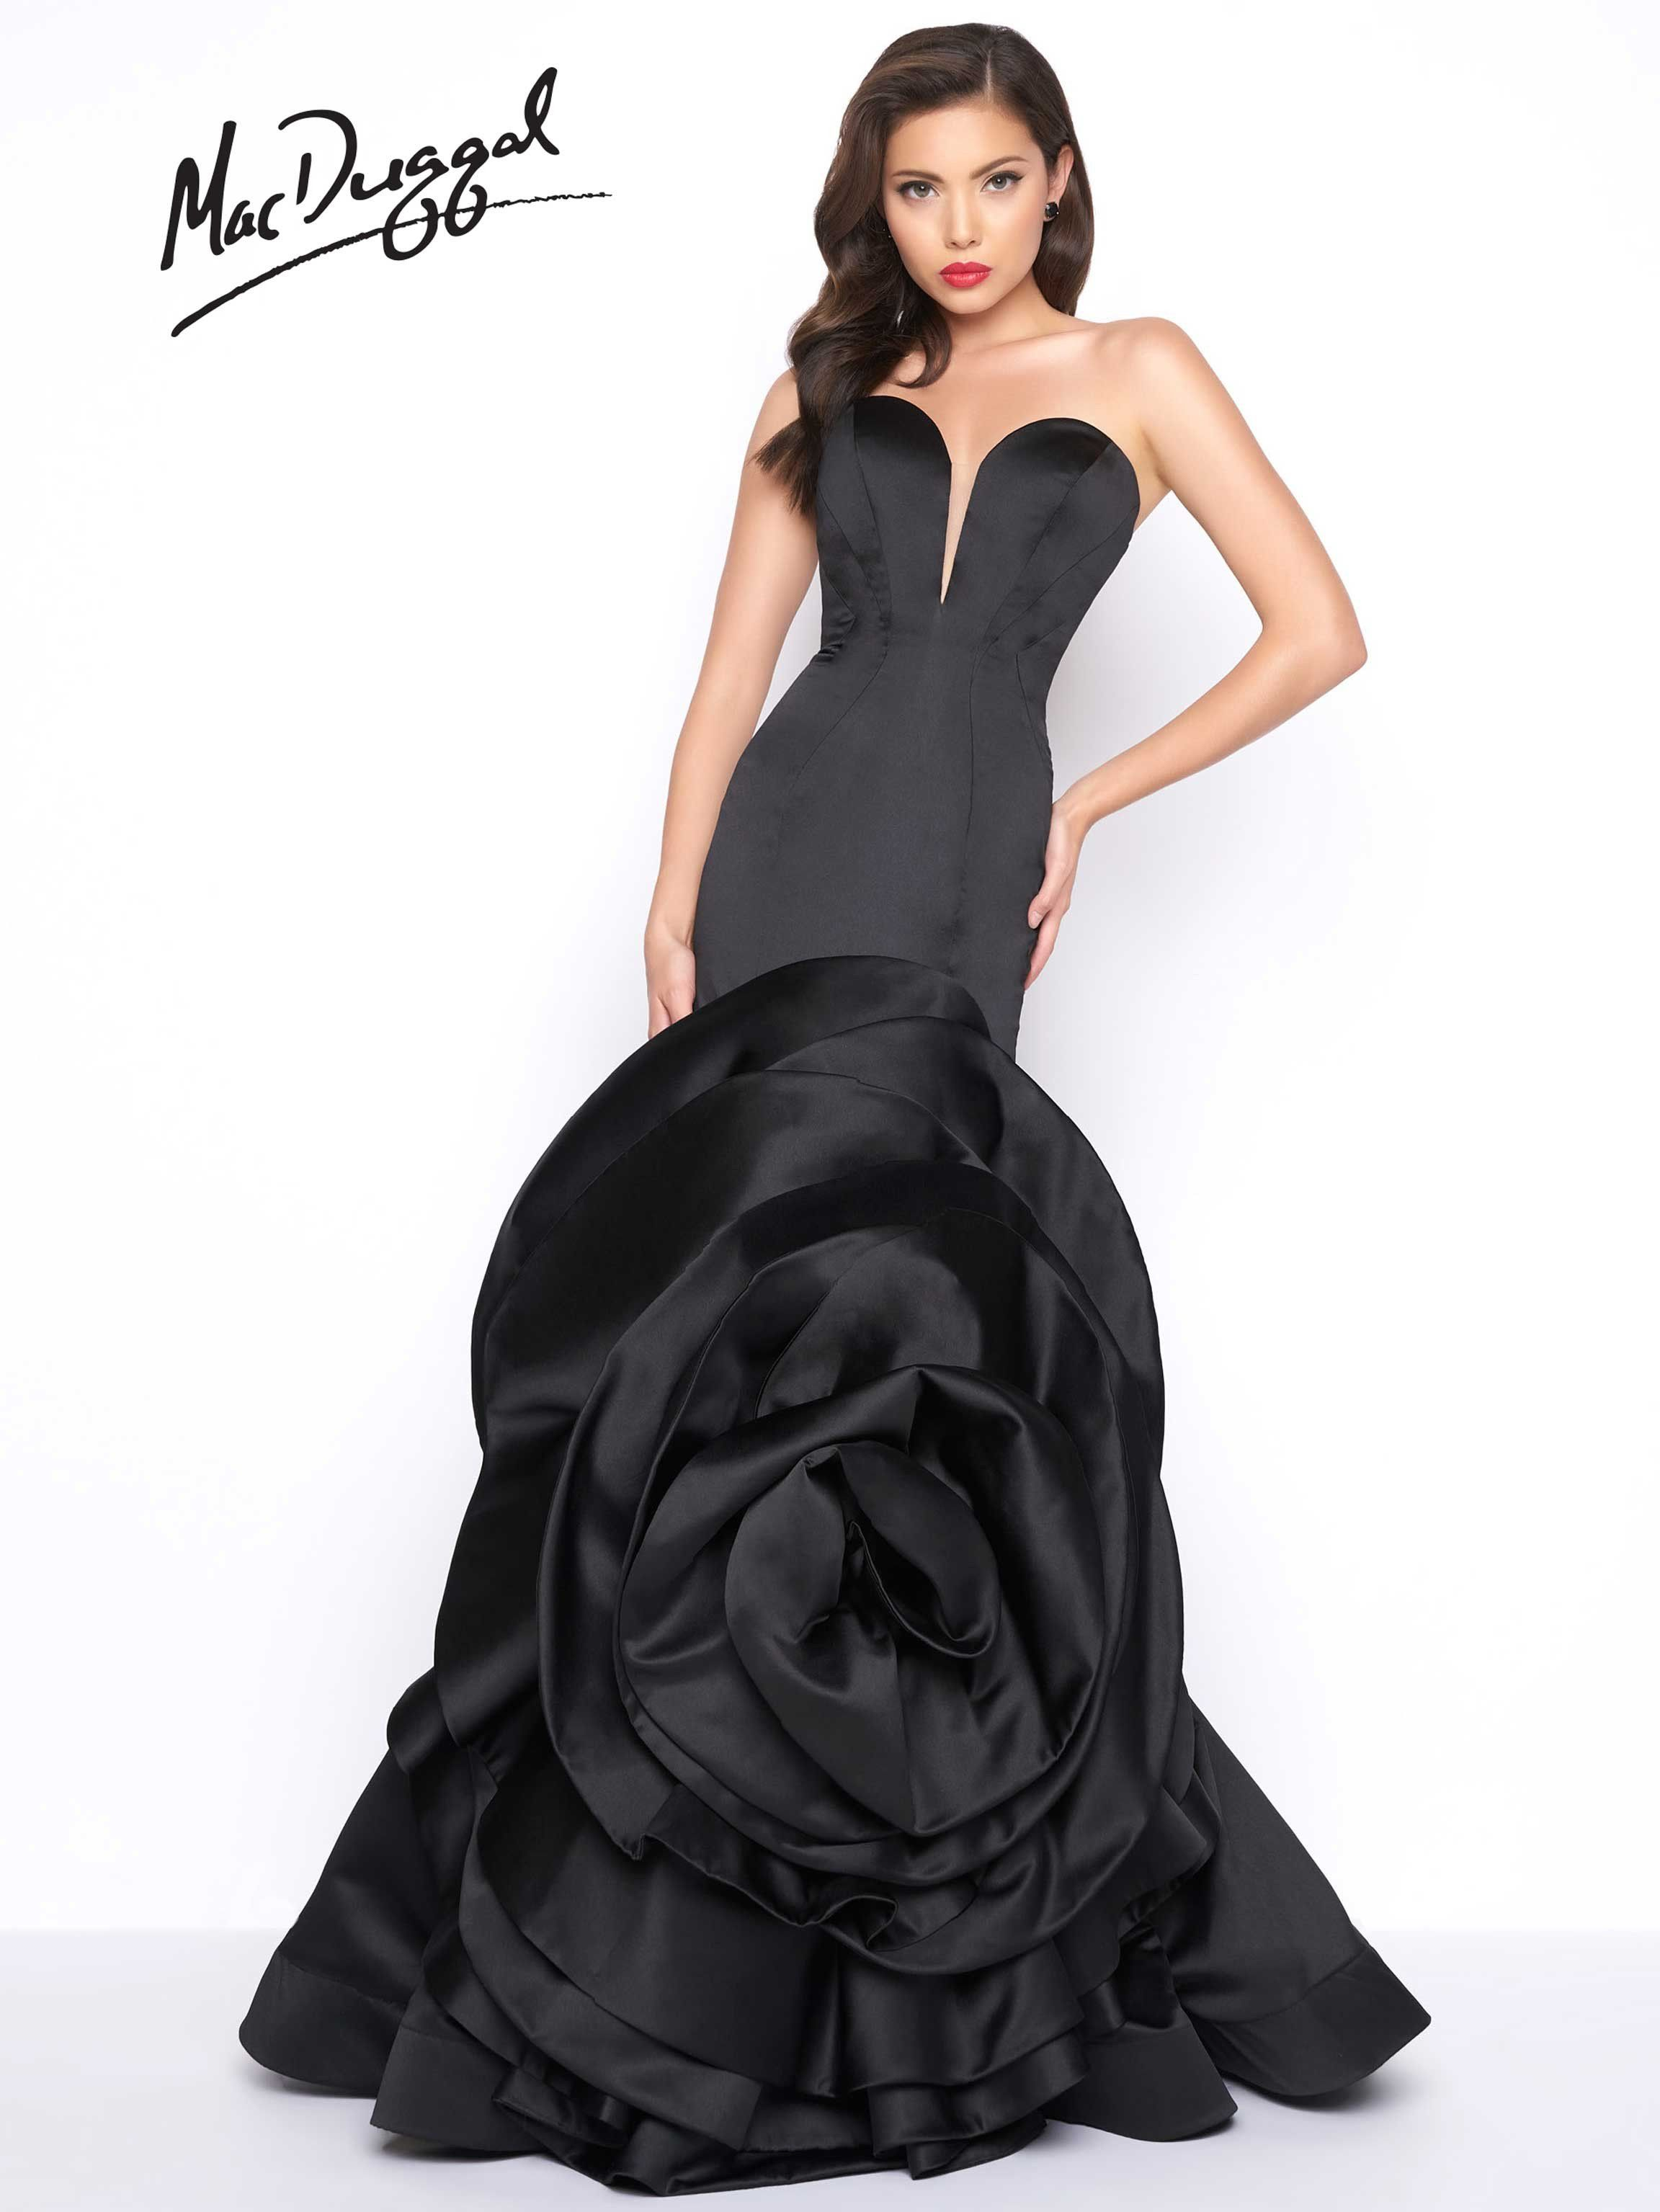 8d0ff7b93197 Black, satin, princess seam, sweetheart neckline, mermaid formal gown with  exaggerated rose